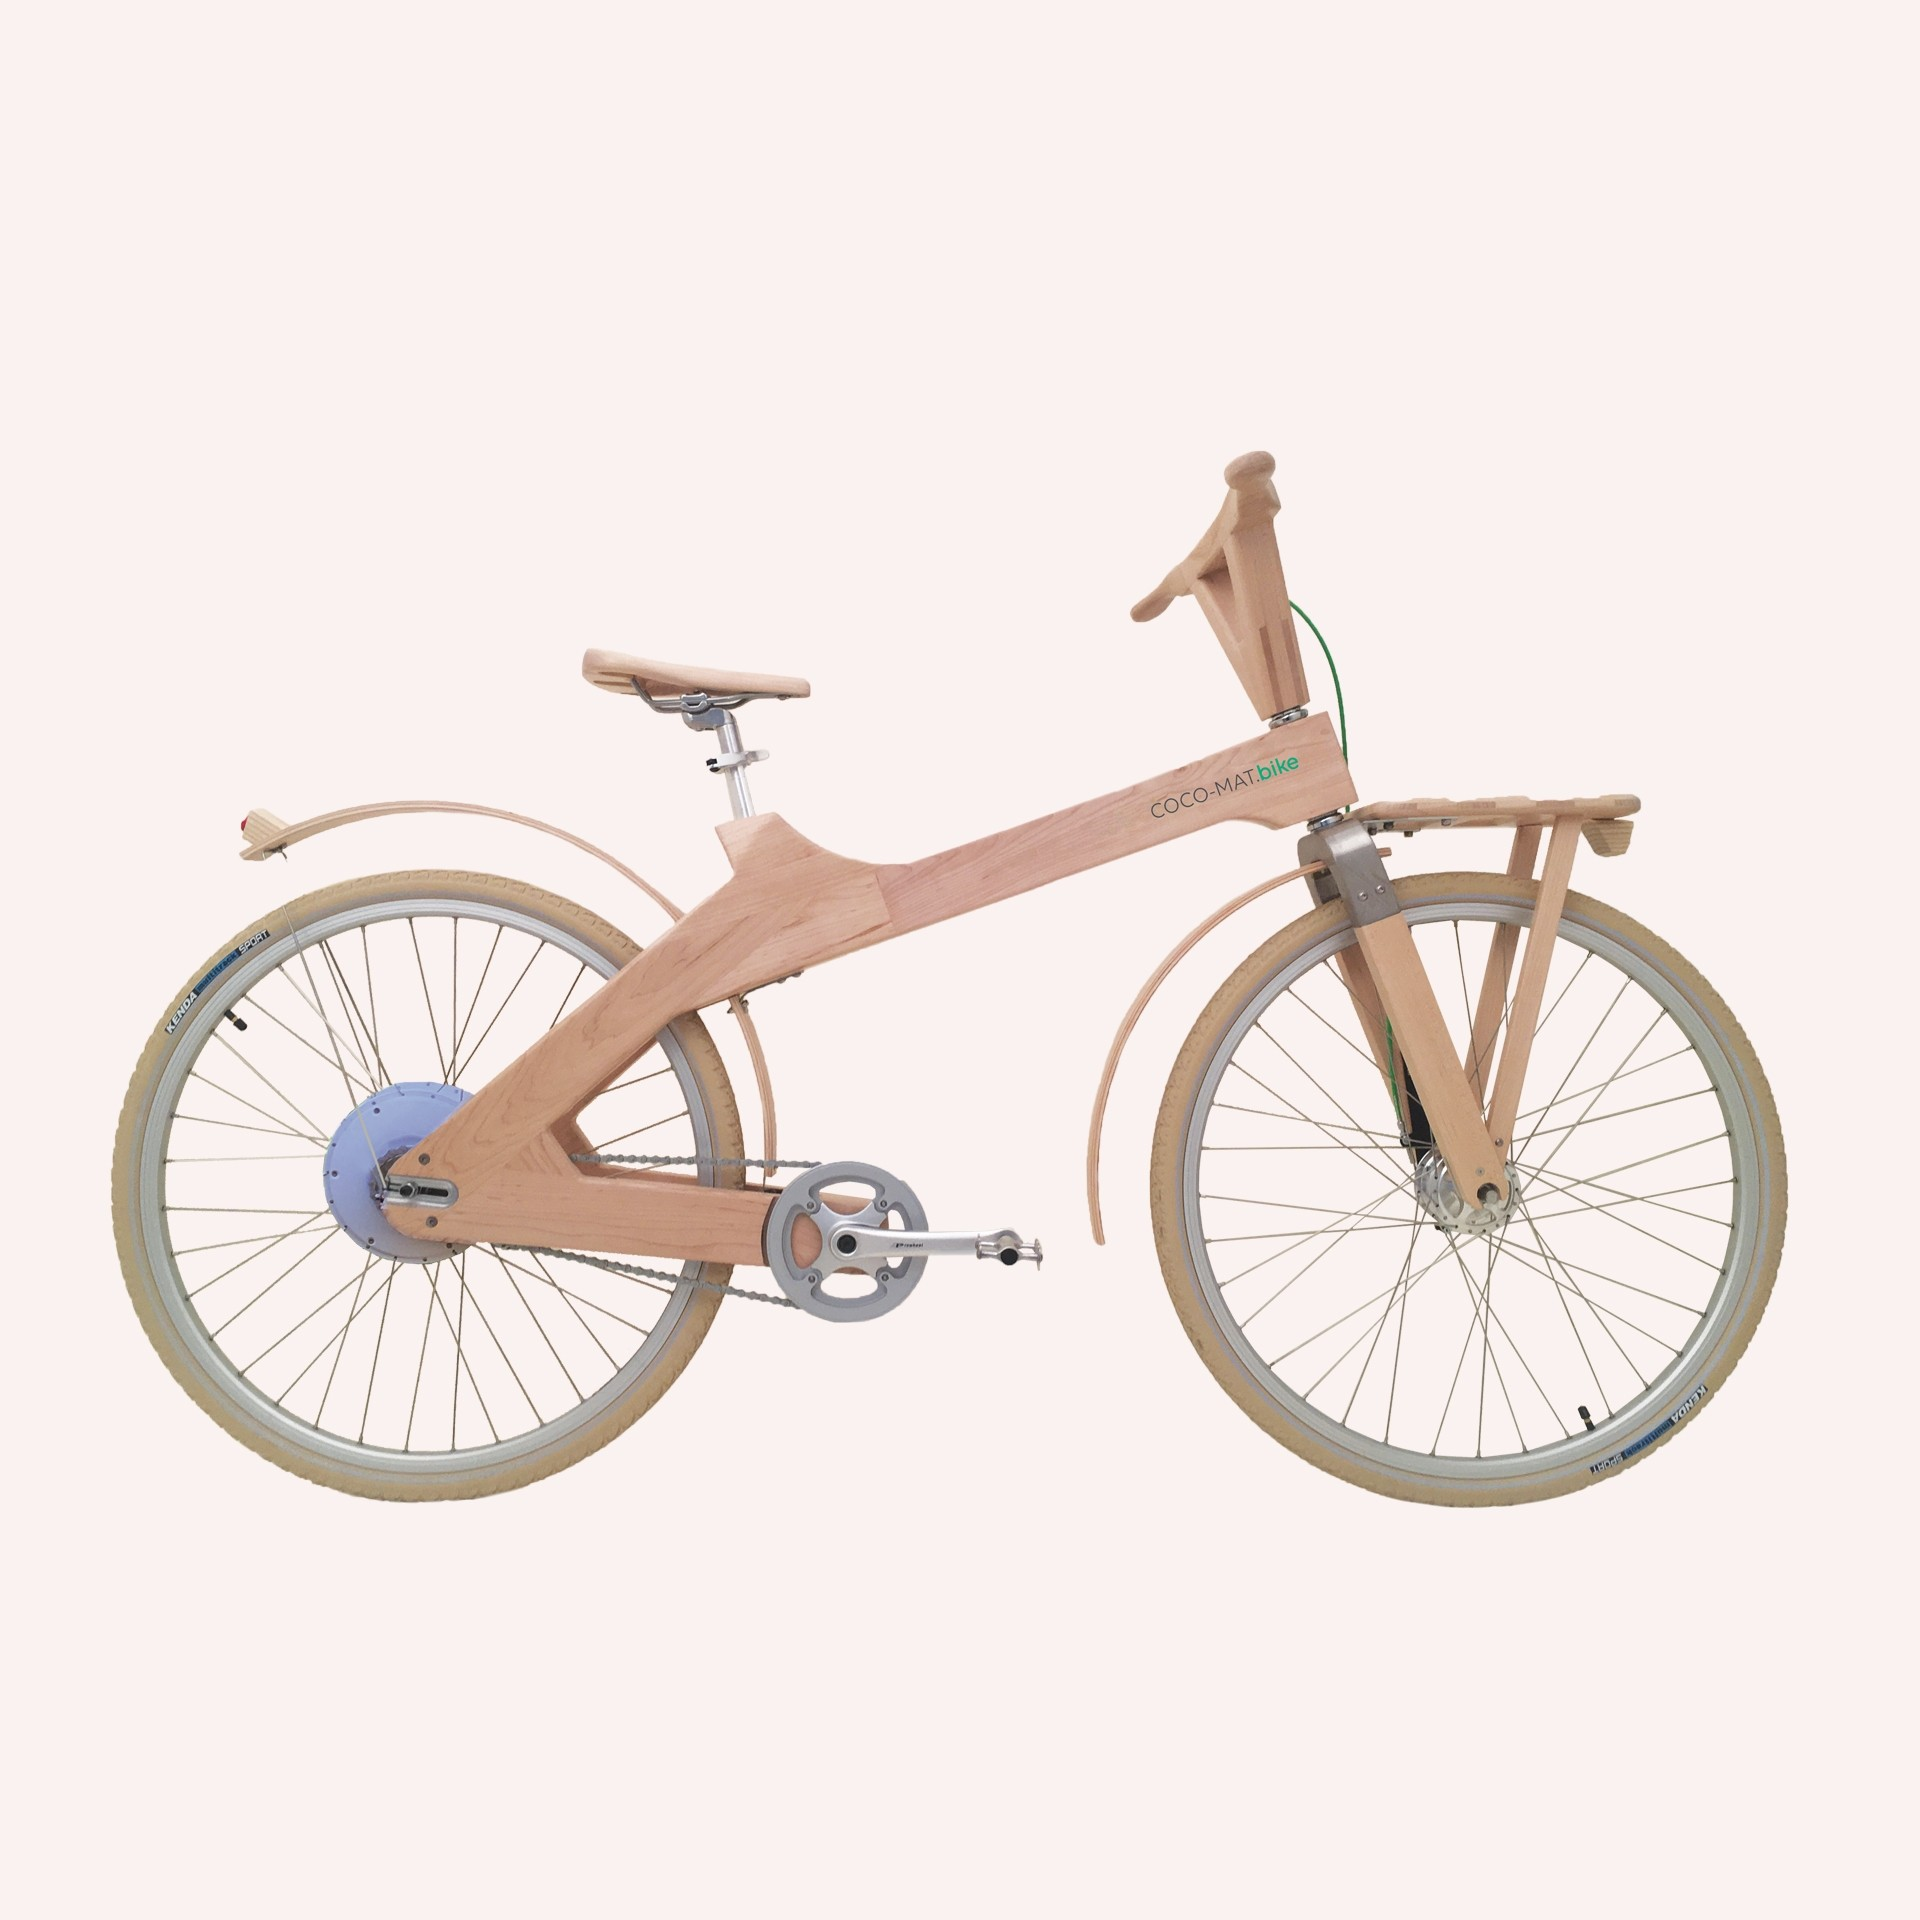 Wooden Bike Odysseus E-bike